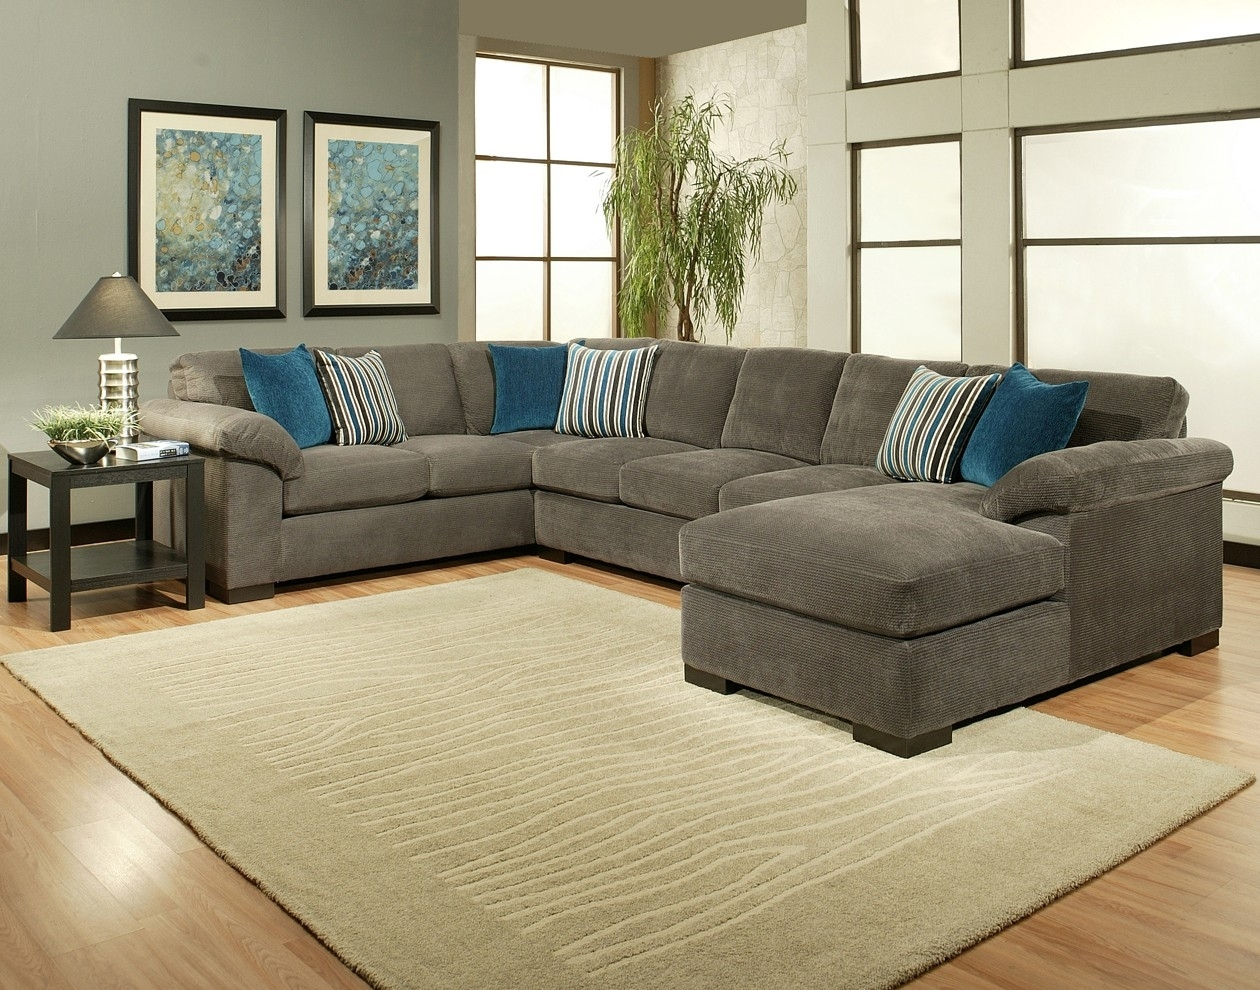 Comfort Industries 3 Pc Fire Fly Sectional Sofa Within Sierra Down 3 Piece Sectionals With Laf Chaise (View 10 of 30)